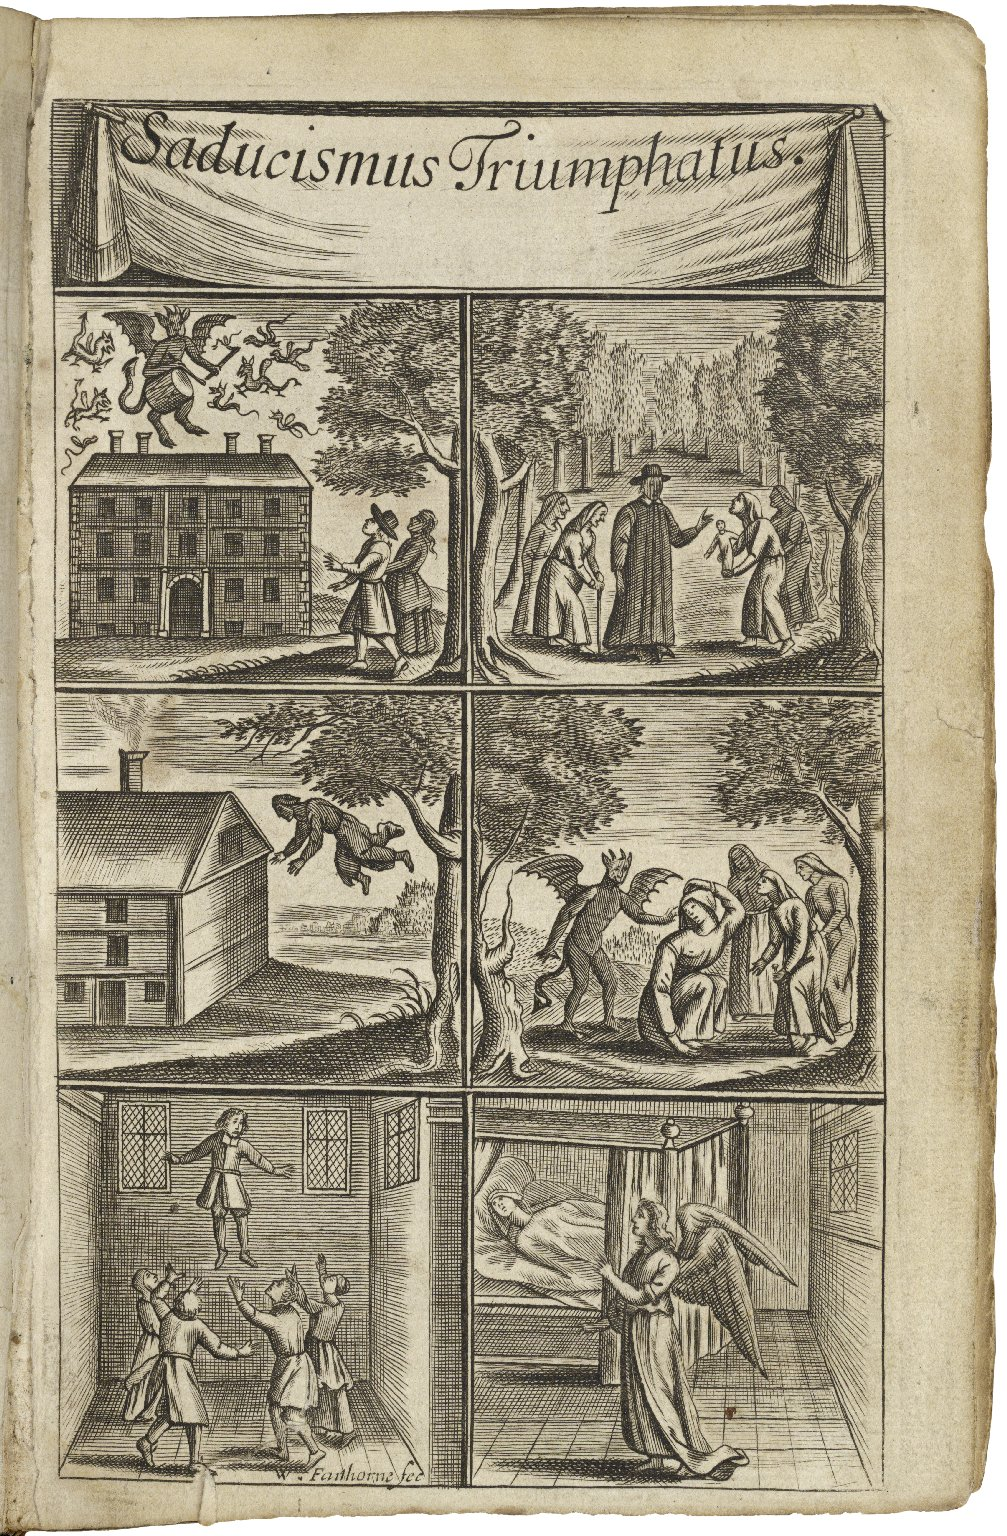 Saducismus triumphatus: or, Full and plain evidence concerning witches and apparitions. In two parts. The first treating of their possiblity. The second of their real existence. By Joseph Glanvil ...